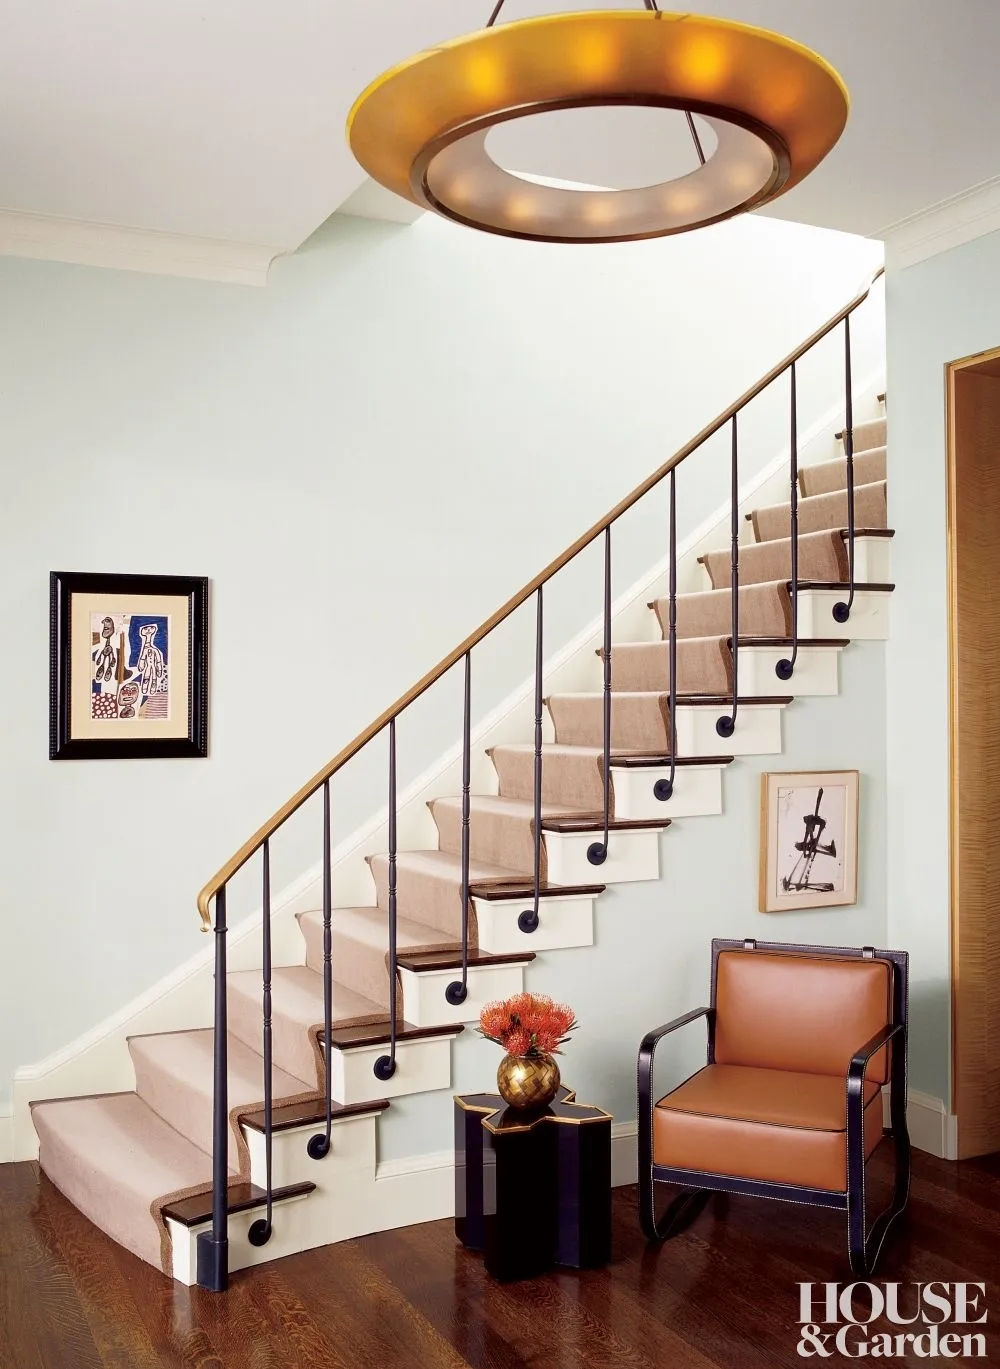 Types Of Stairs Explained Architectural Digest | New Home Stairs Design | Beautiful | Entrance | Iron | Stairway | Wall